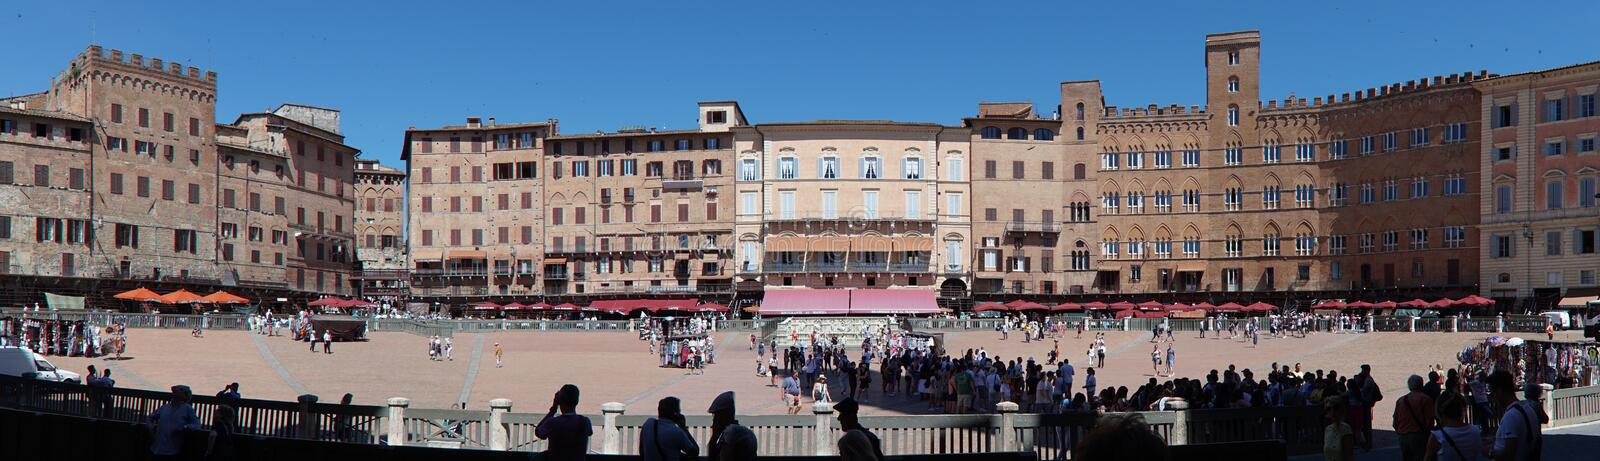 Central square of the Italian city of Siena. Panoramic shot of piazza del campo central square of the italian city of siena stock photo